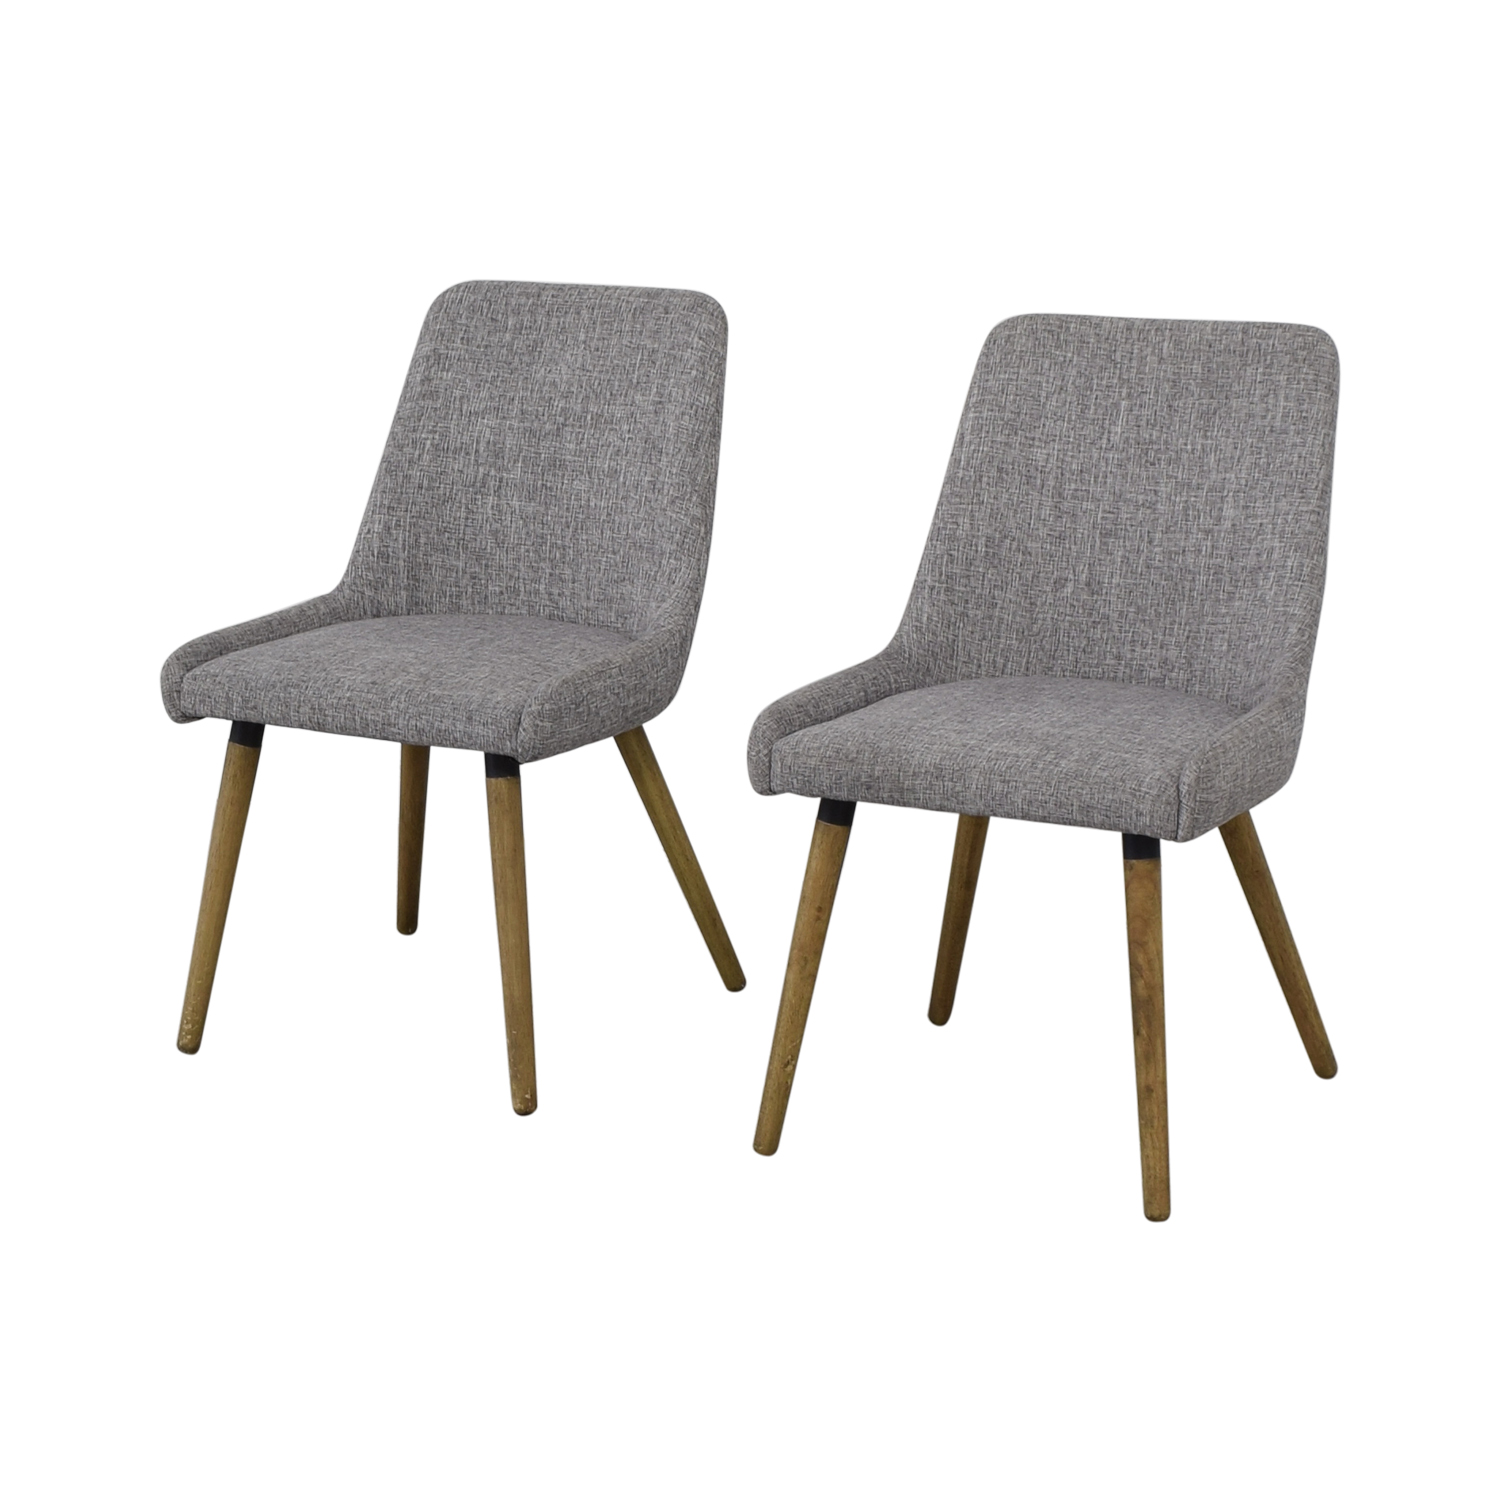 West Elm Mid-Century Upholstered Dining Chairs sale